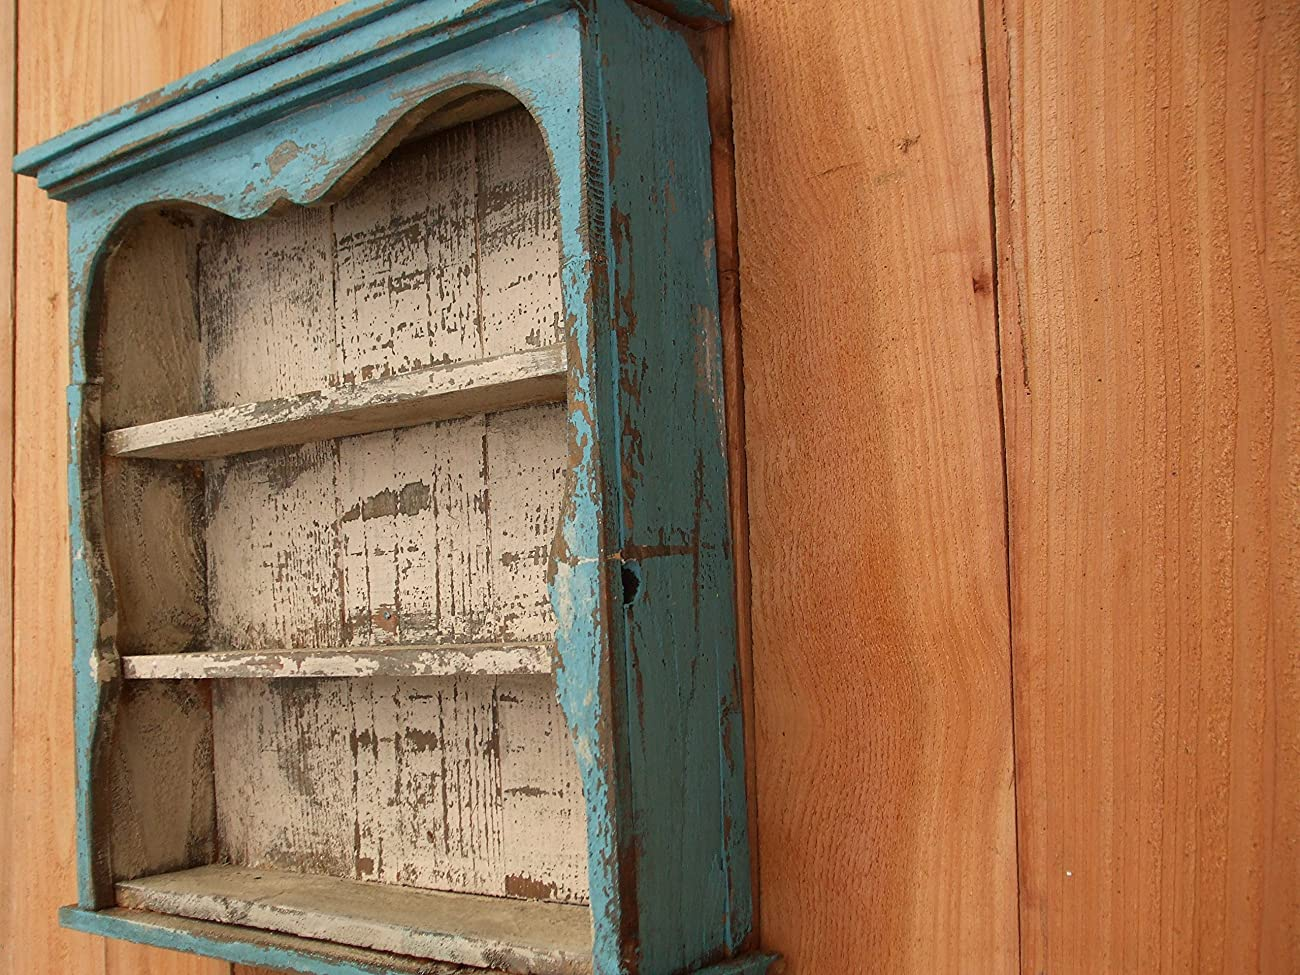 Shabby Chic Style Blue Wall Shelf, Distressed Turquoise, Book Shelf, French Country, Shadow Box, Display Case, CEDAR, HANDMADE	 1